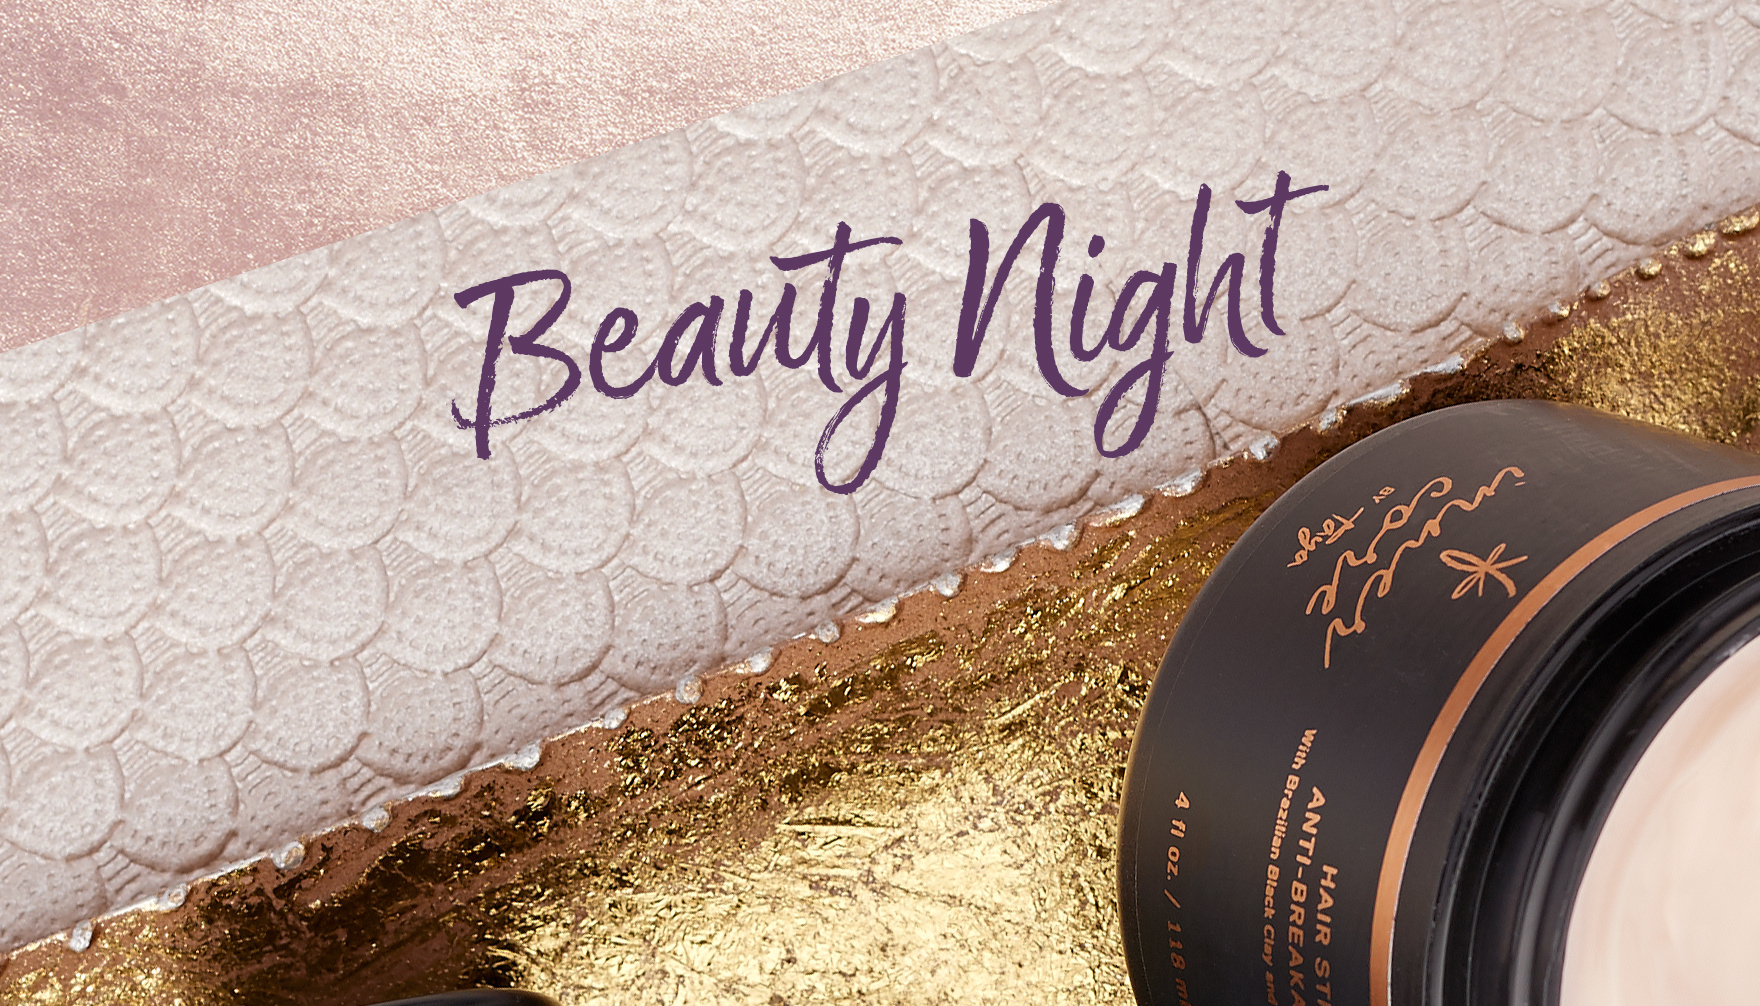 Beauty Night. Enjoy an inside look at what's hot & happening.